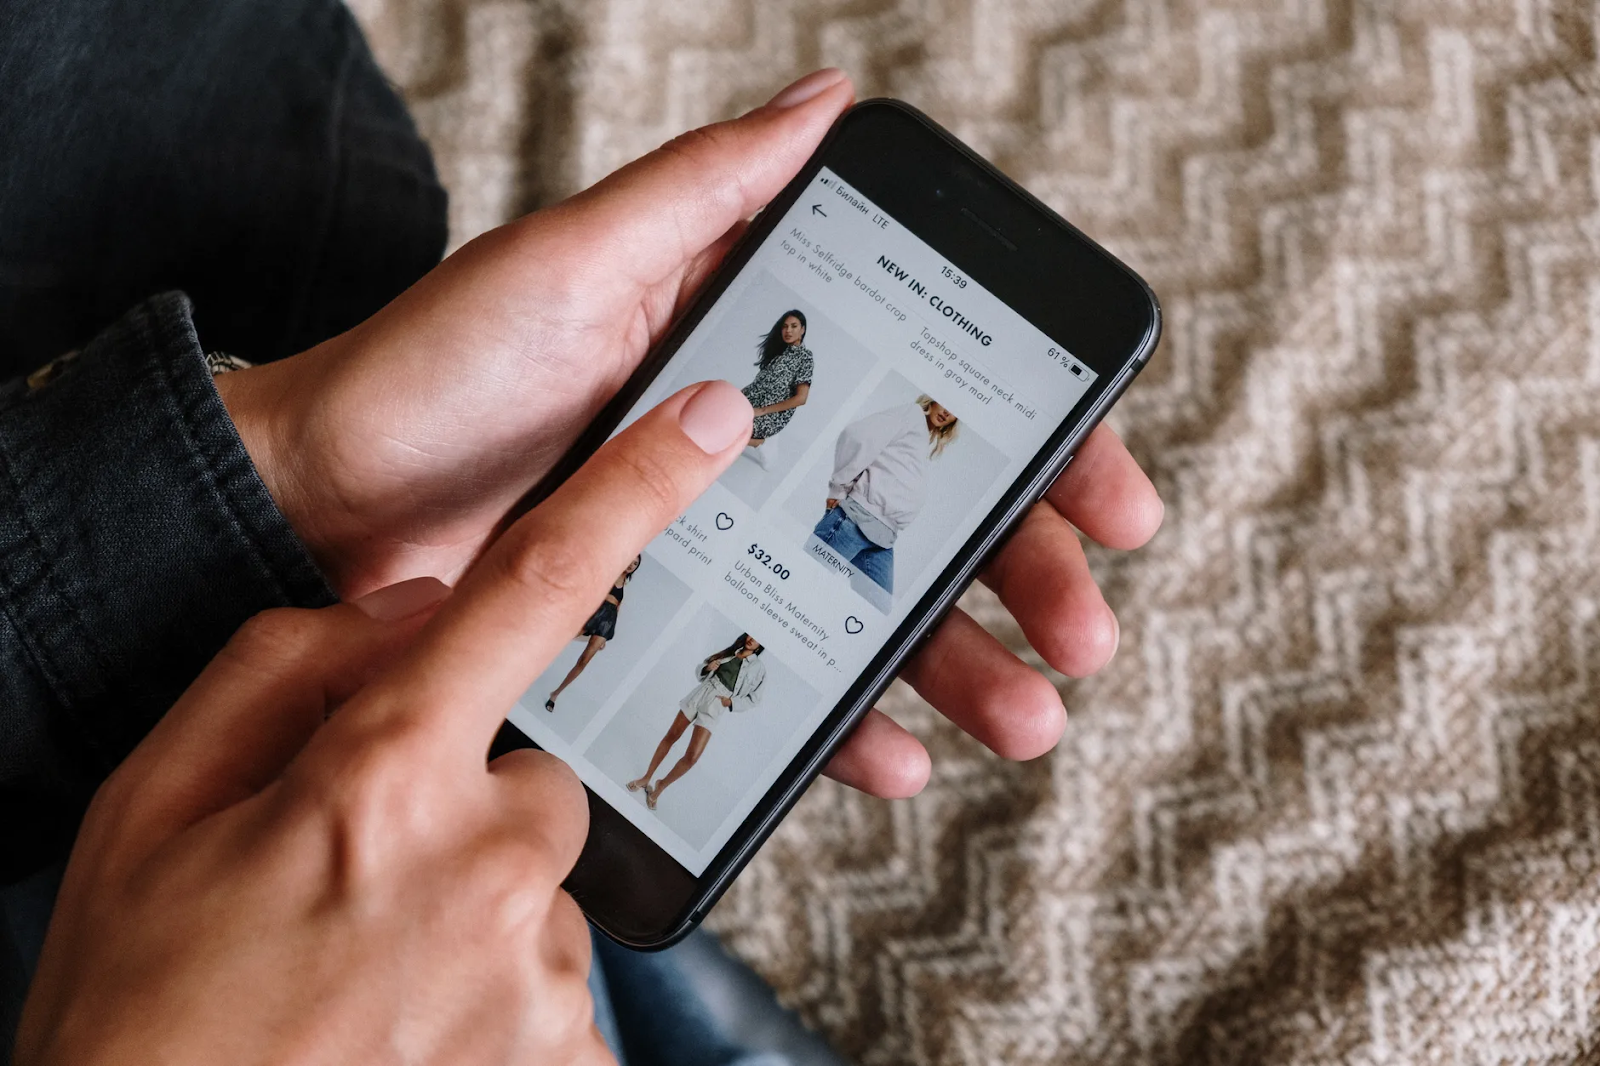 Person scrolling through an eCommerce app for clothes